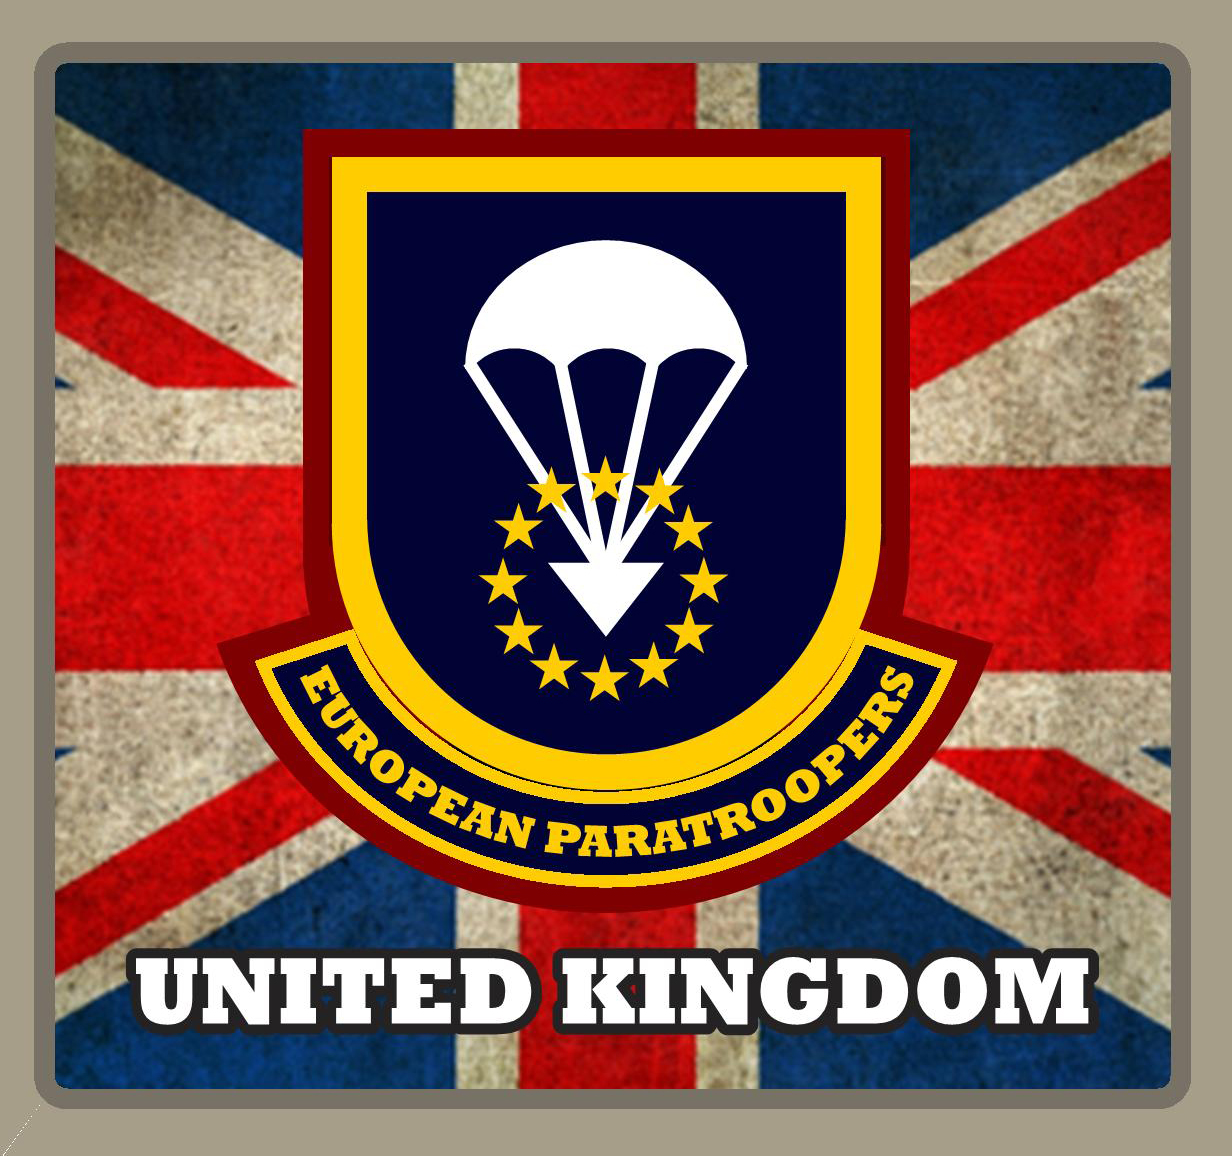 EUROPEAN PARATROOPERS UK 2017